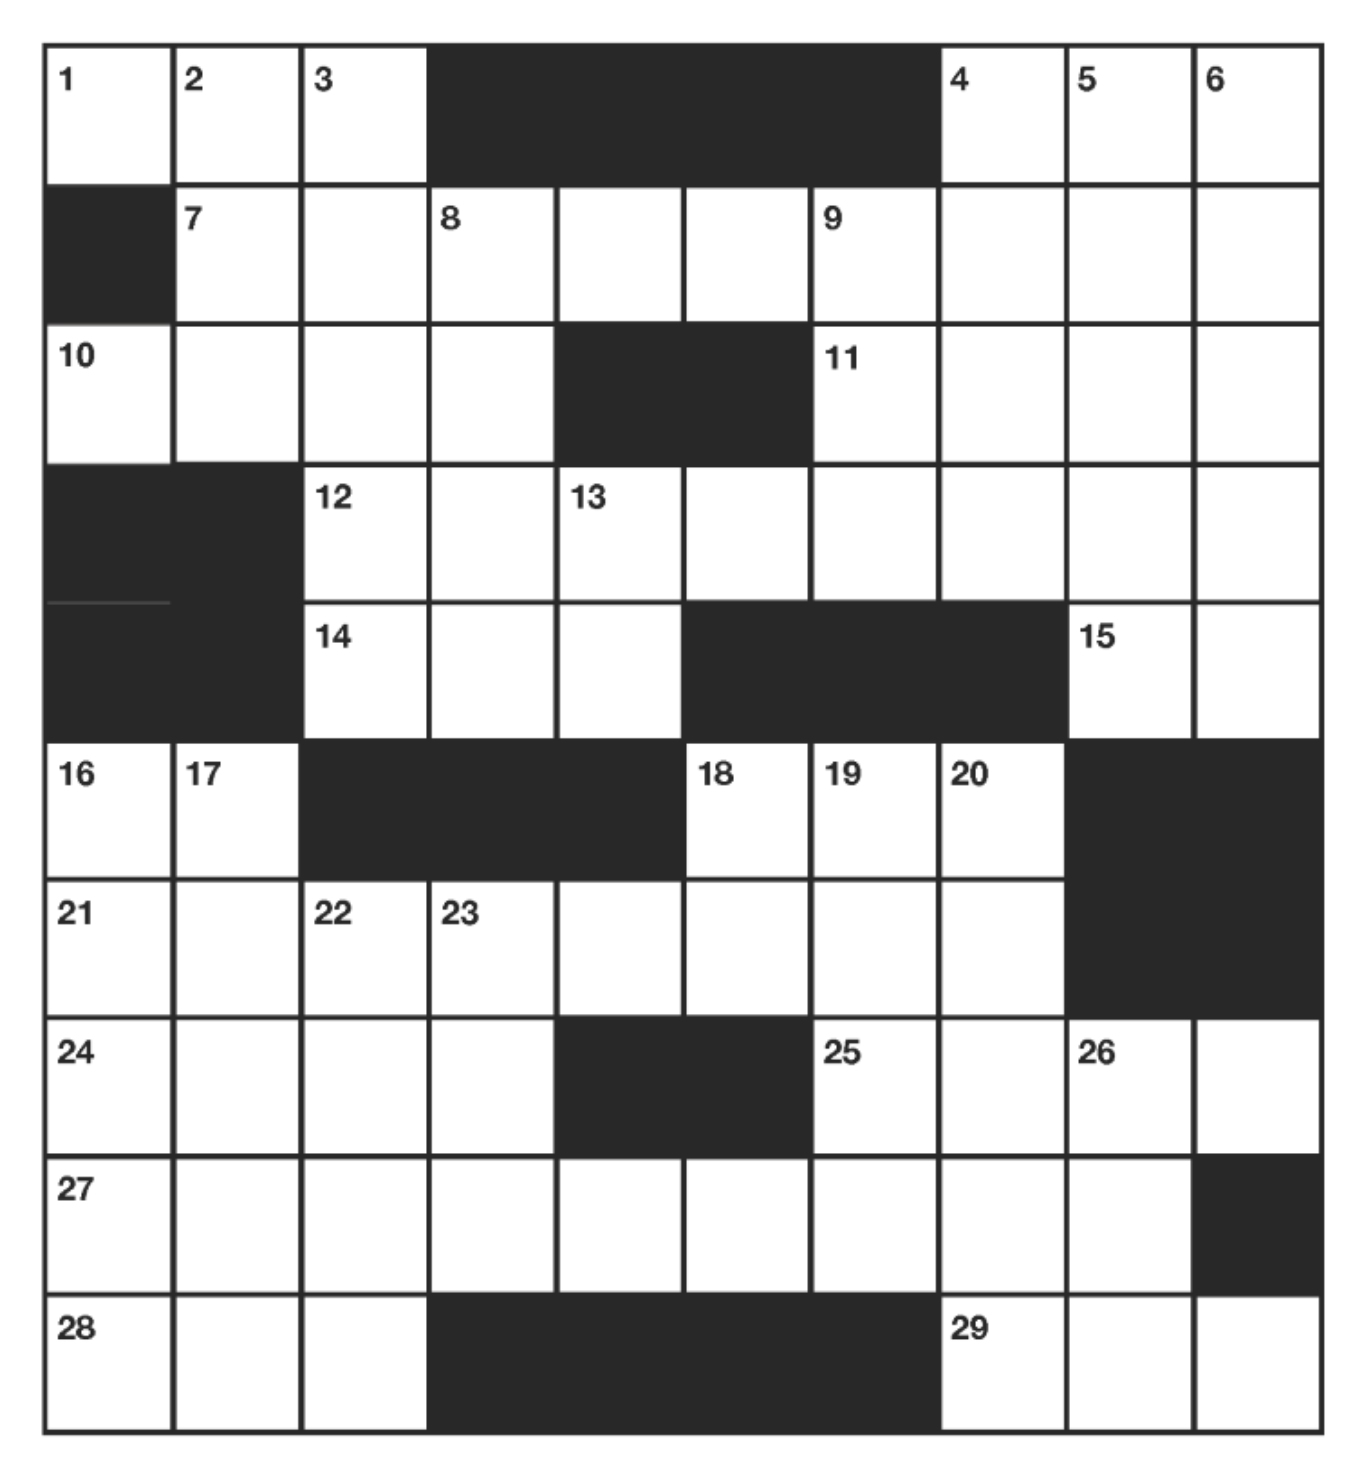 JULY CATSKILL CROSSWORD - July 2020